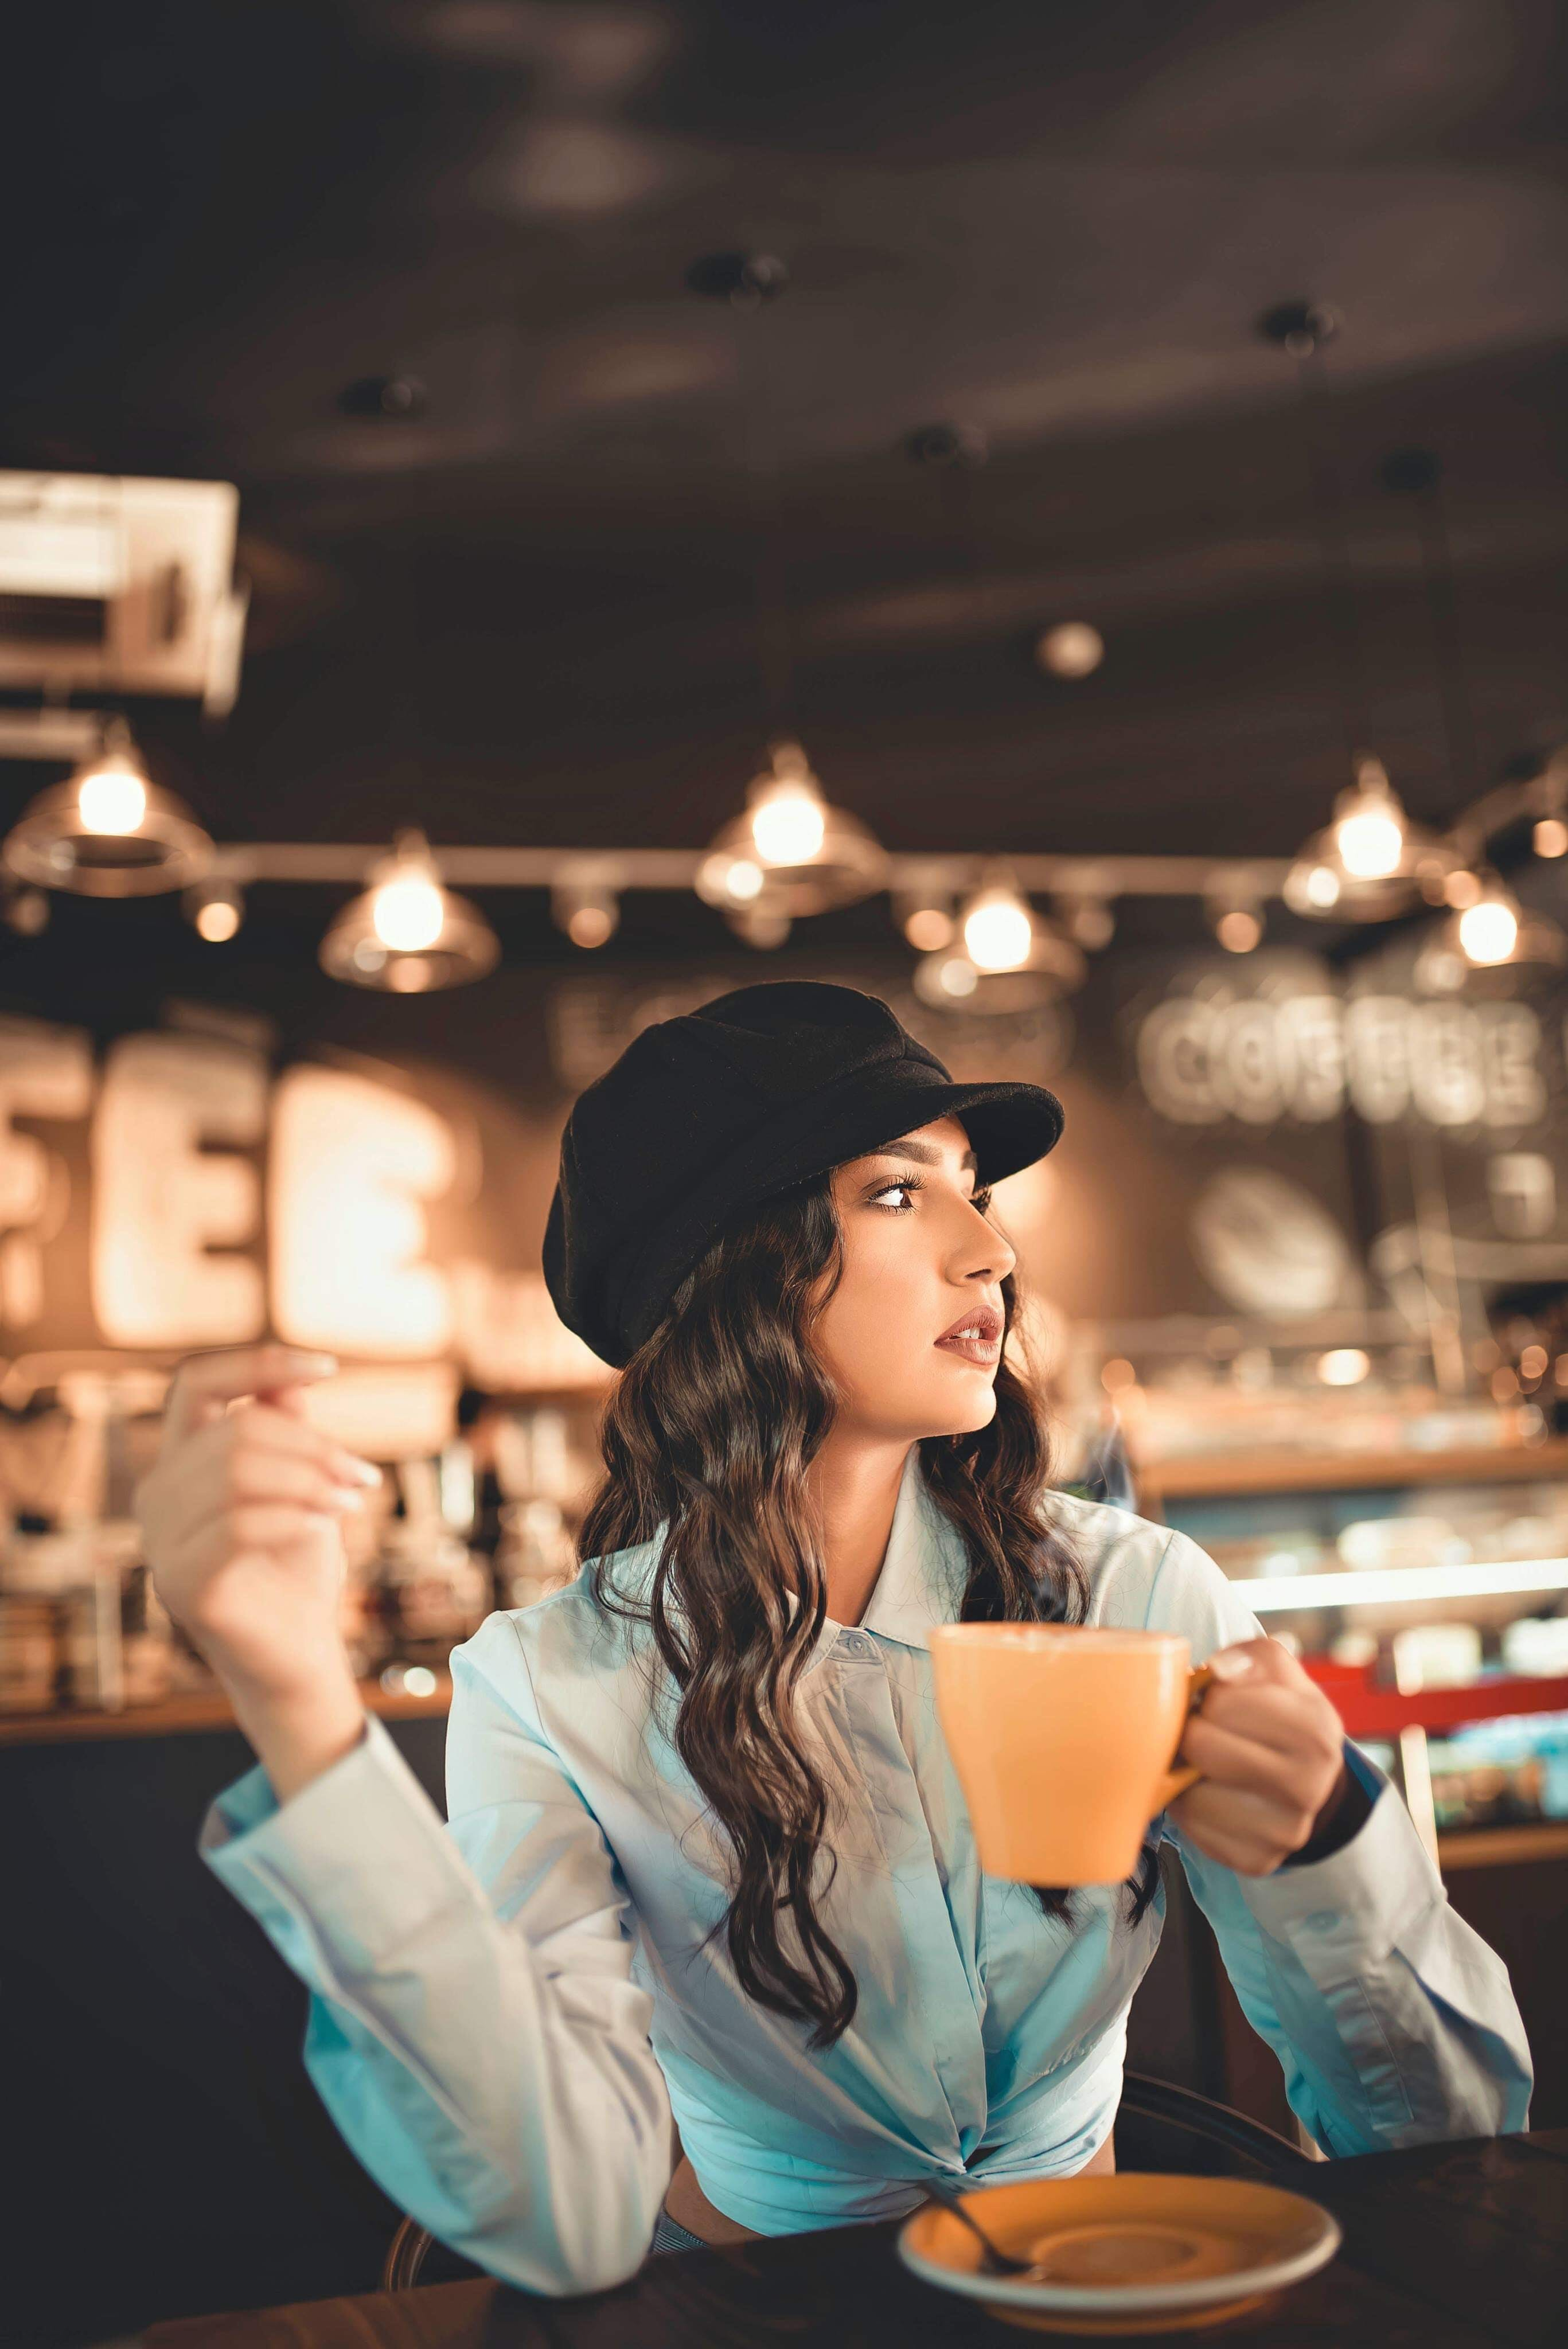 Woman Holds Hot Beverage Cup at the Restaurant